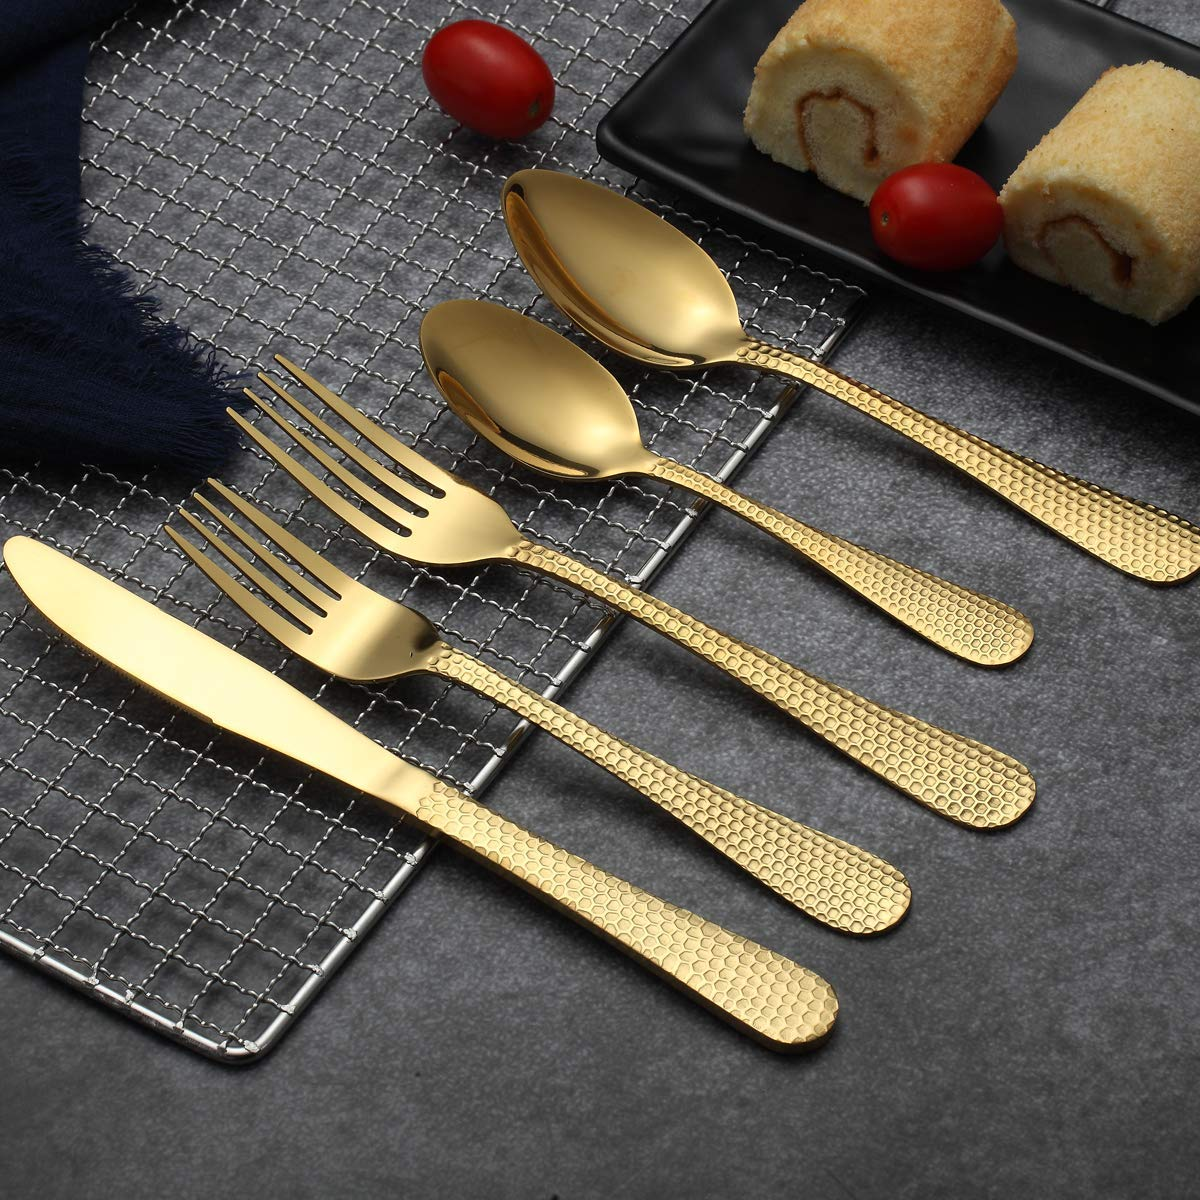 20 Pieces Service For 4 Shiny Rainbow Packing With A Classic Golden Metal Holder Kyraton Colorful Titianium Plated Stainless Steel Flatware Set 20 Pieces,Hammer Design Rainbow Color Silverware Set